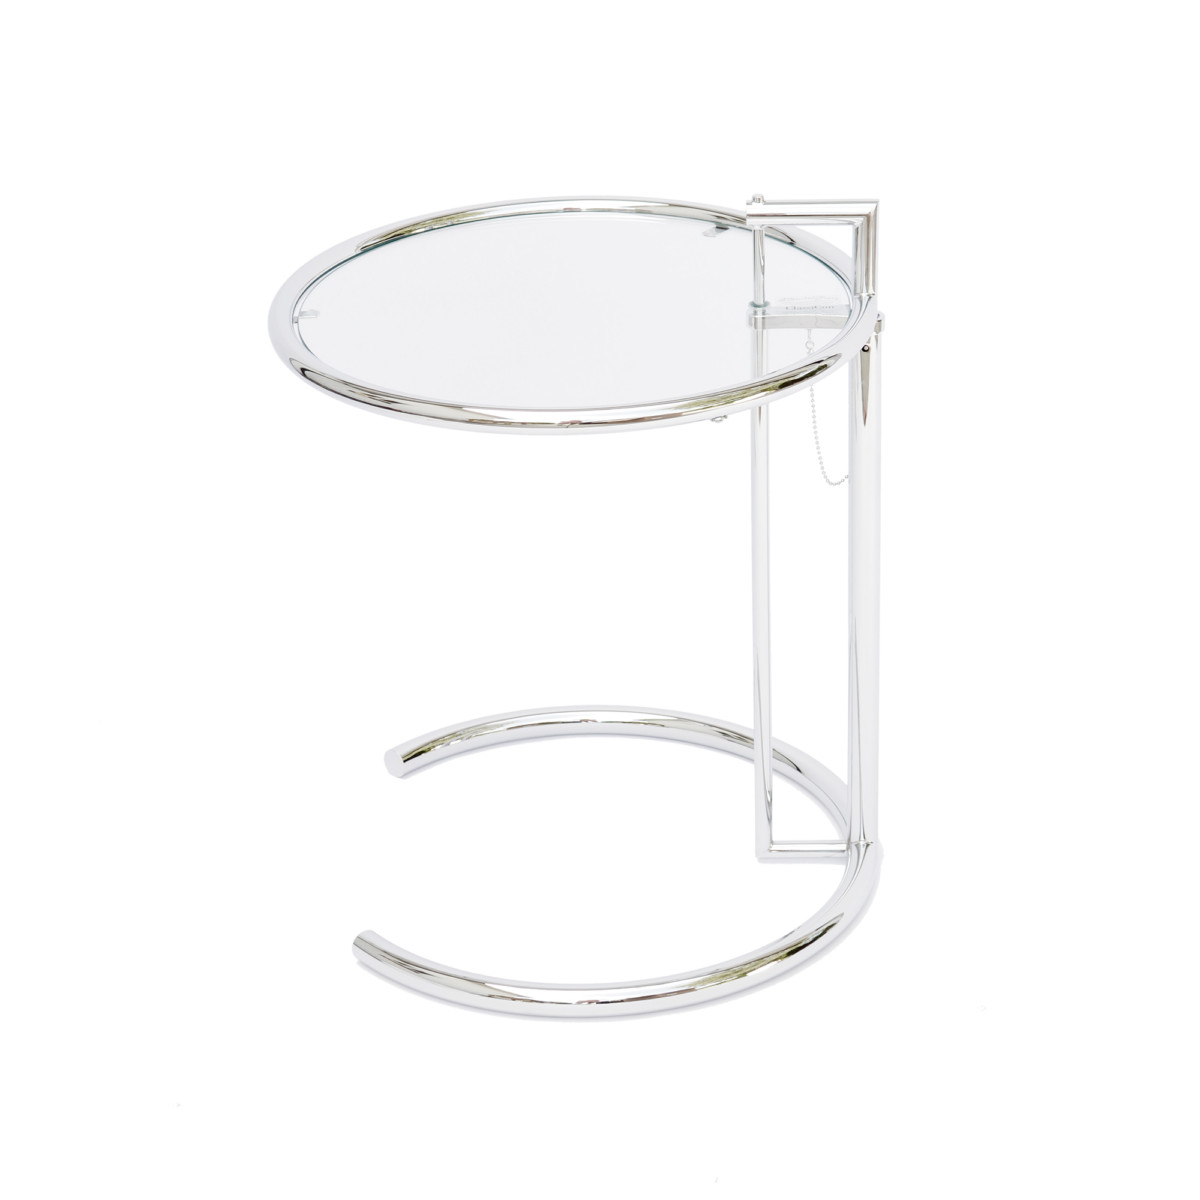 Entzuckend ClassiCon Adjustable Table E 1027 Design Eileen Gray